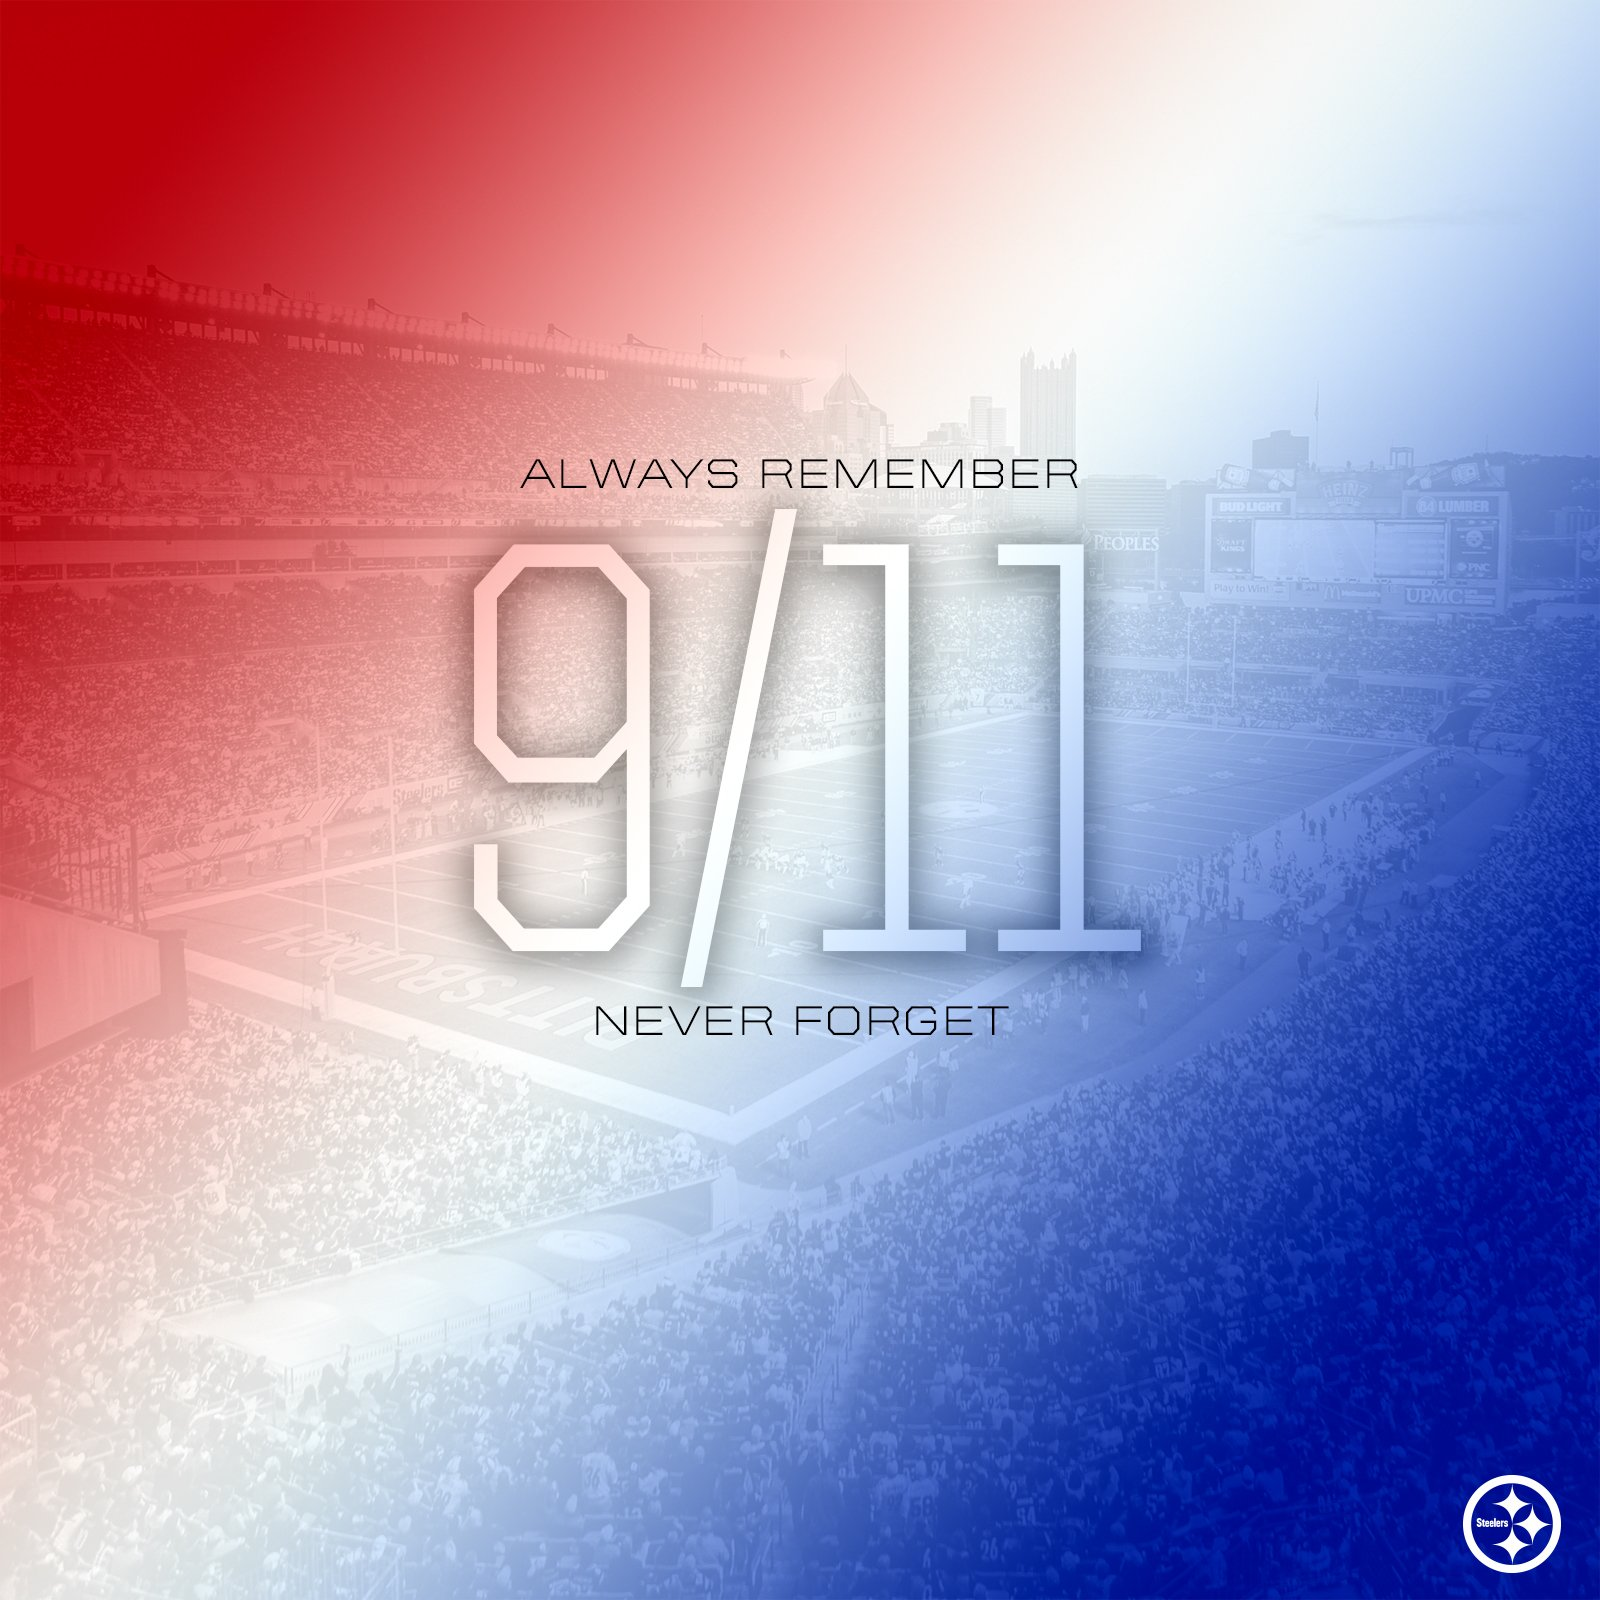 We will #NeverForget. ���� https://t.co/GmJCJ1Dvh4